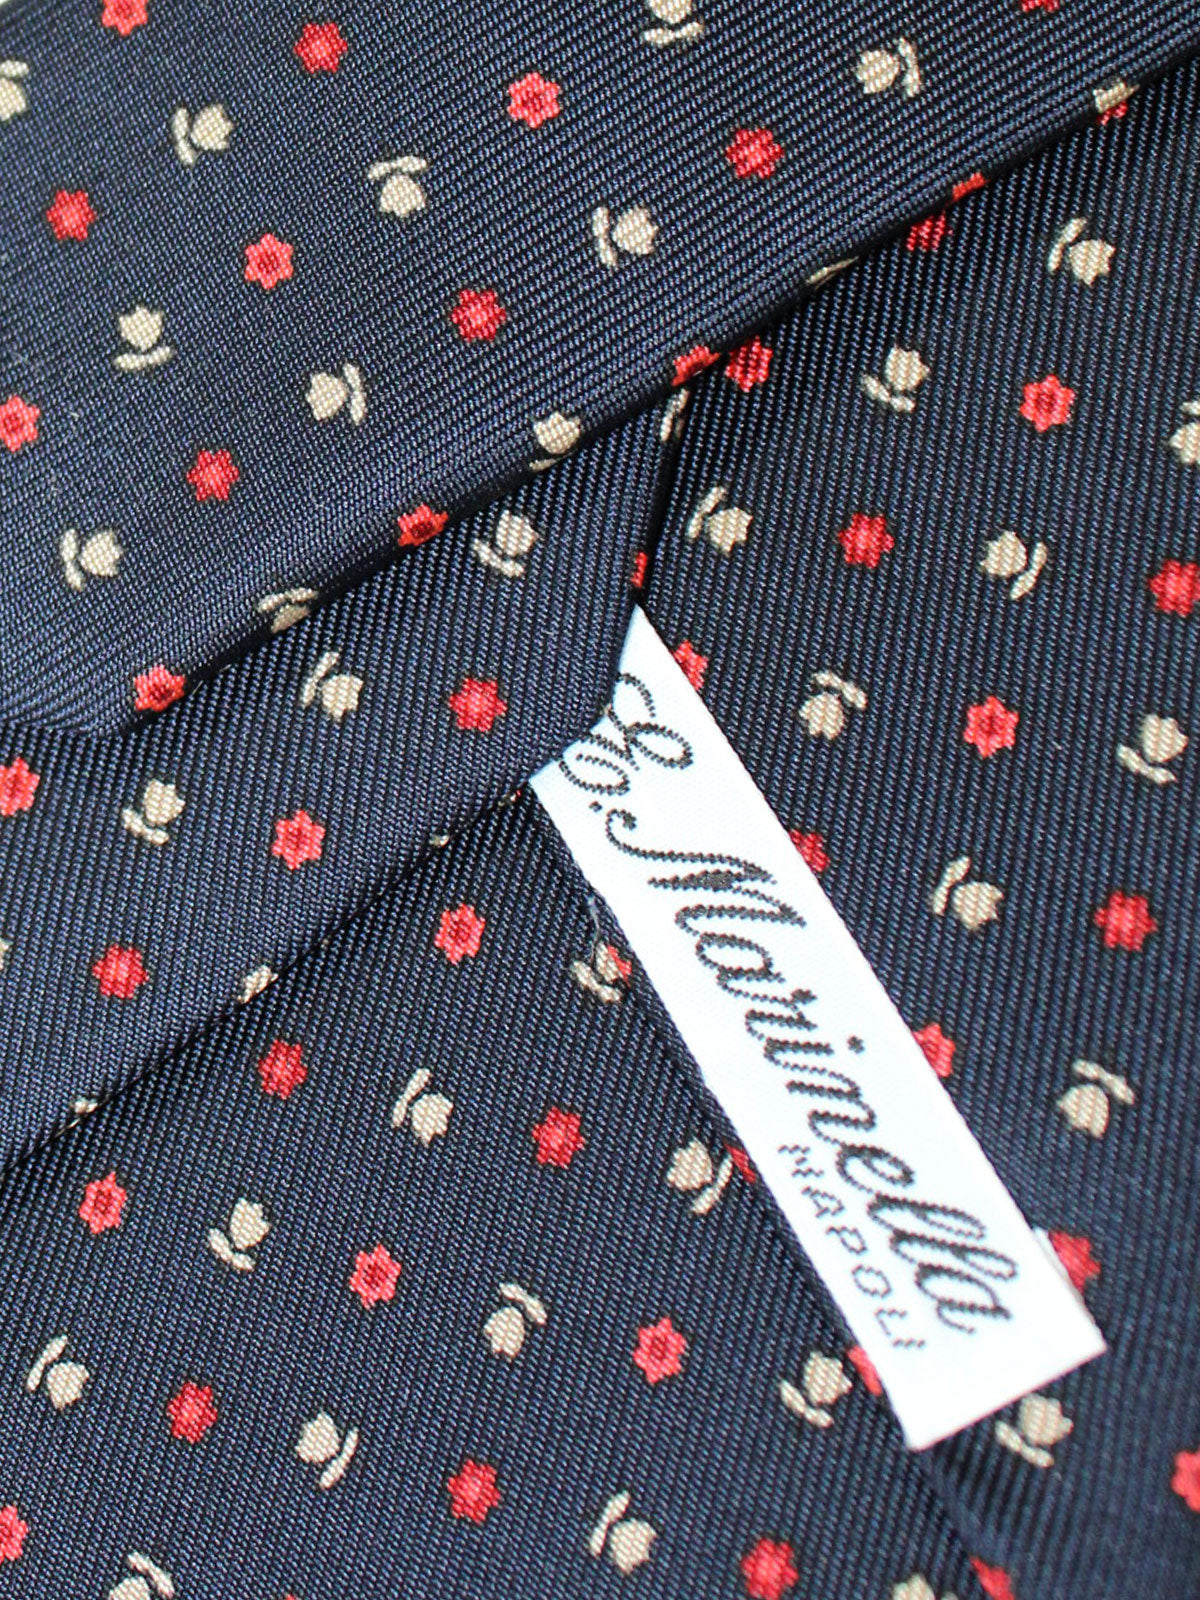 E. Marinella Silk Tie Navy Red White Flowers